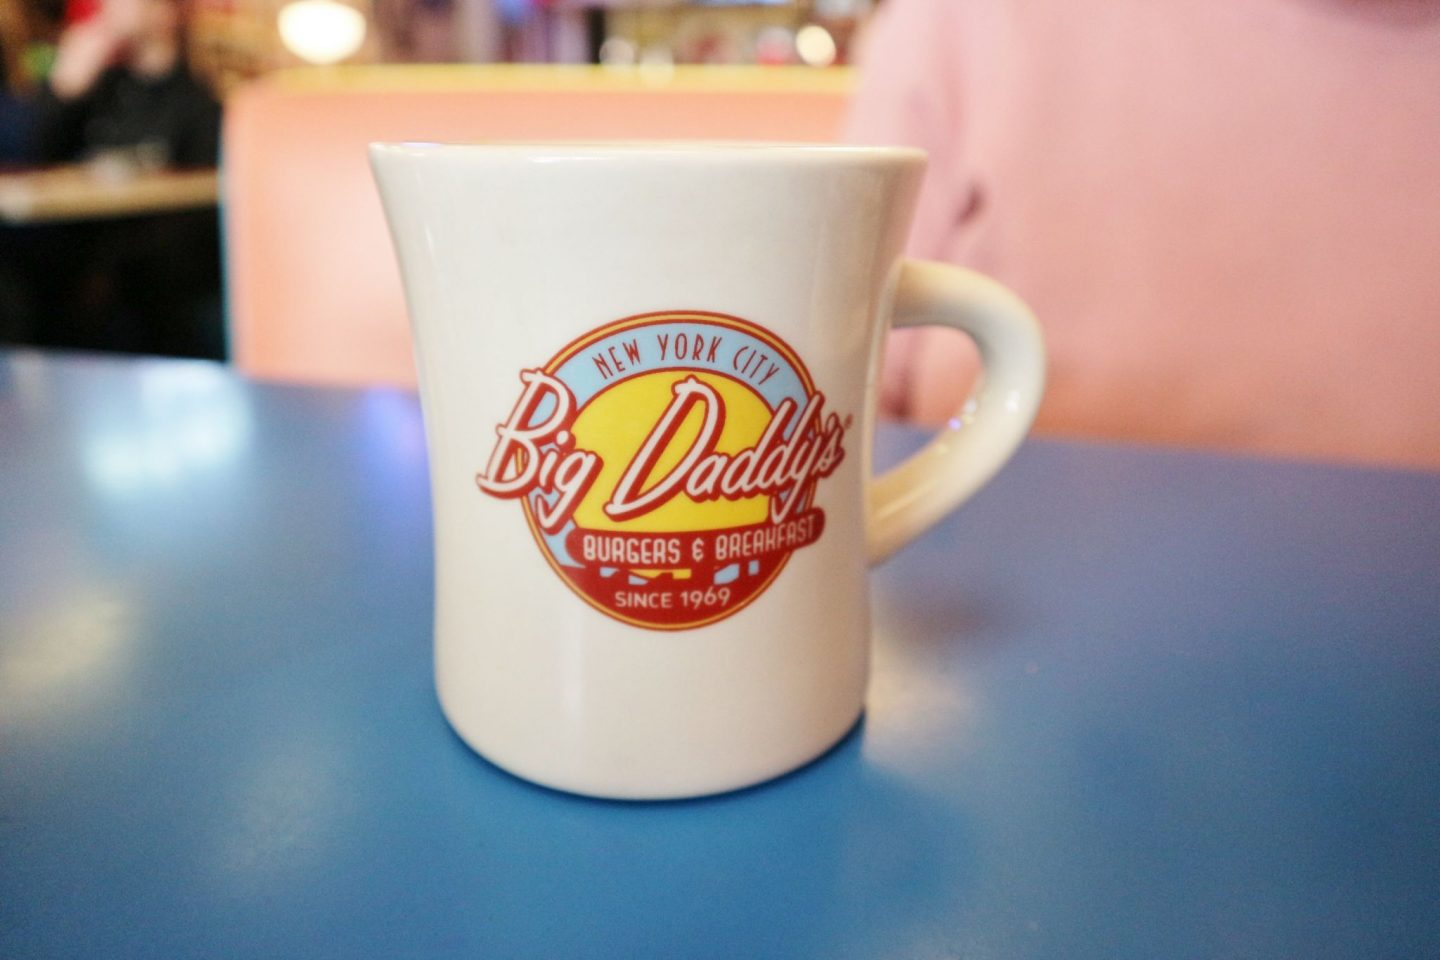 big daddys nyc mug